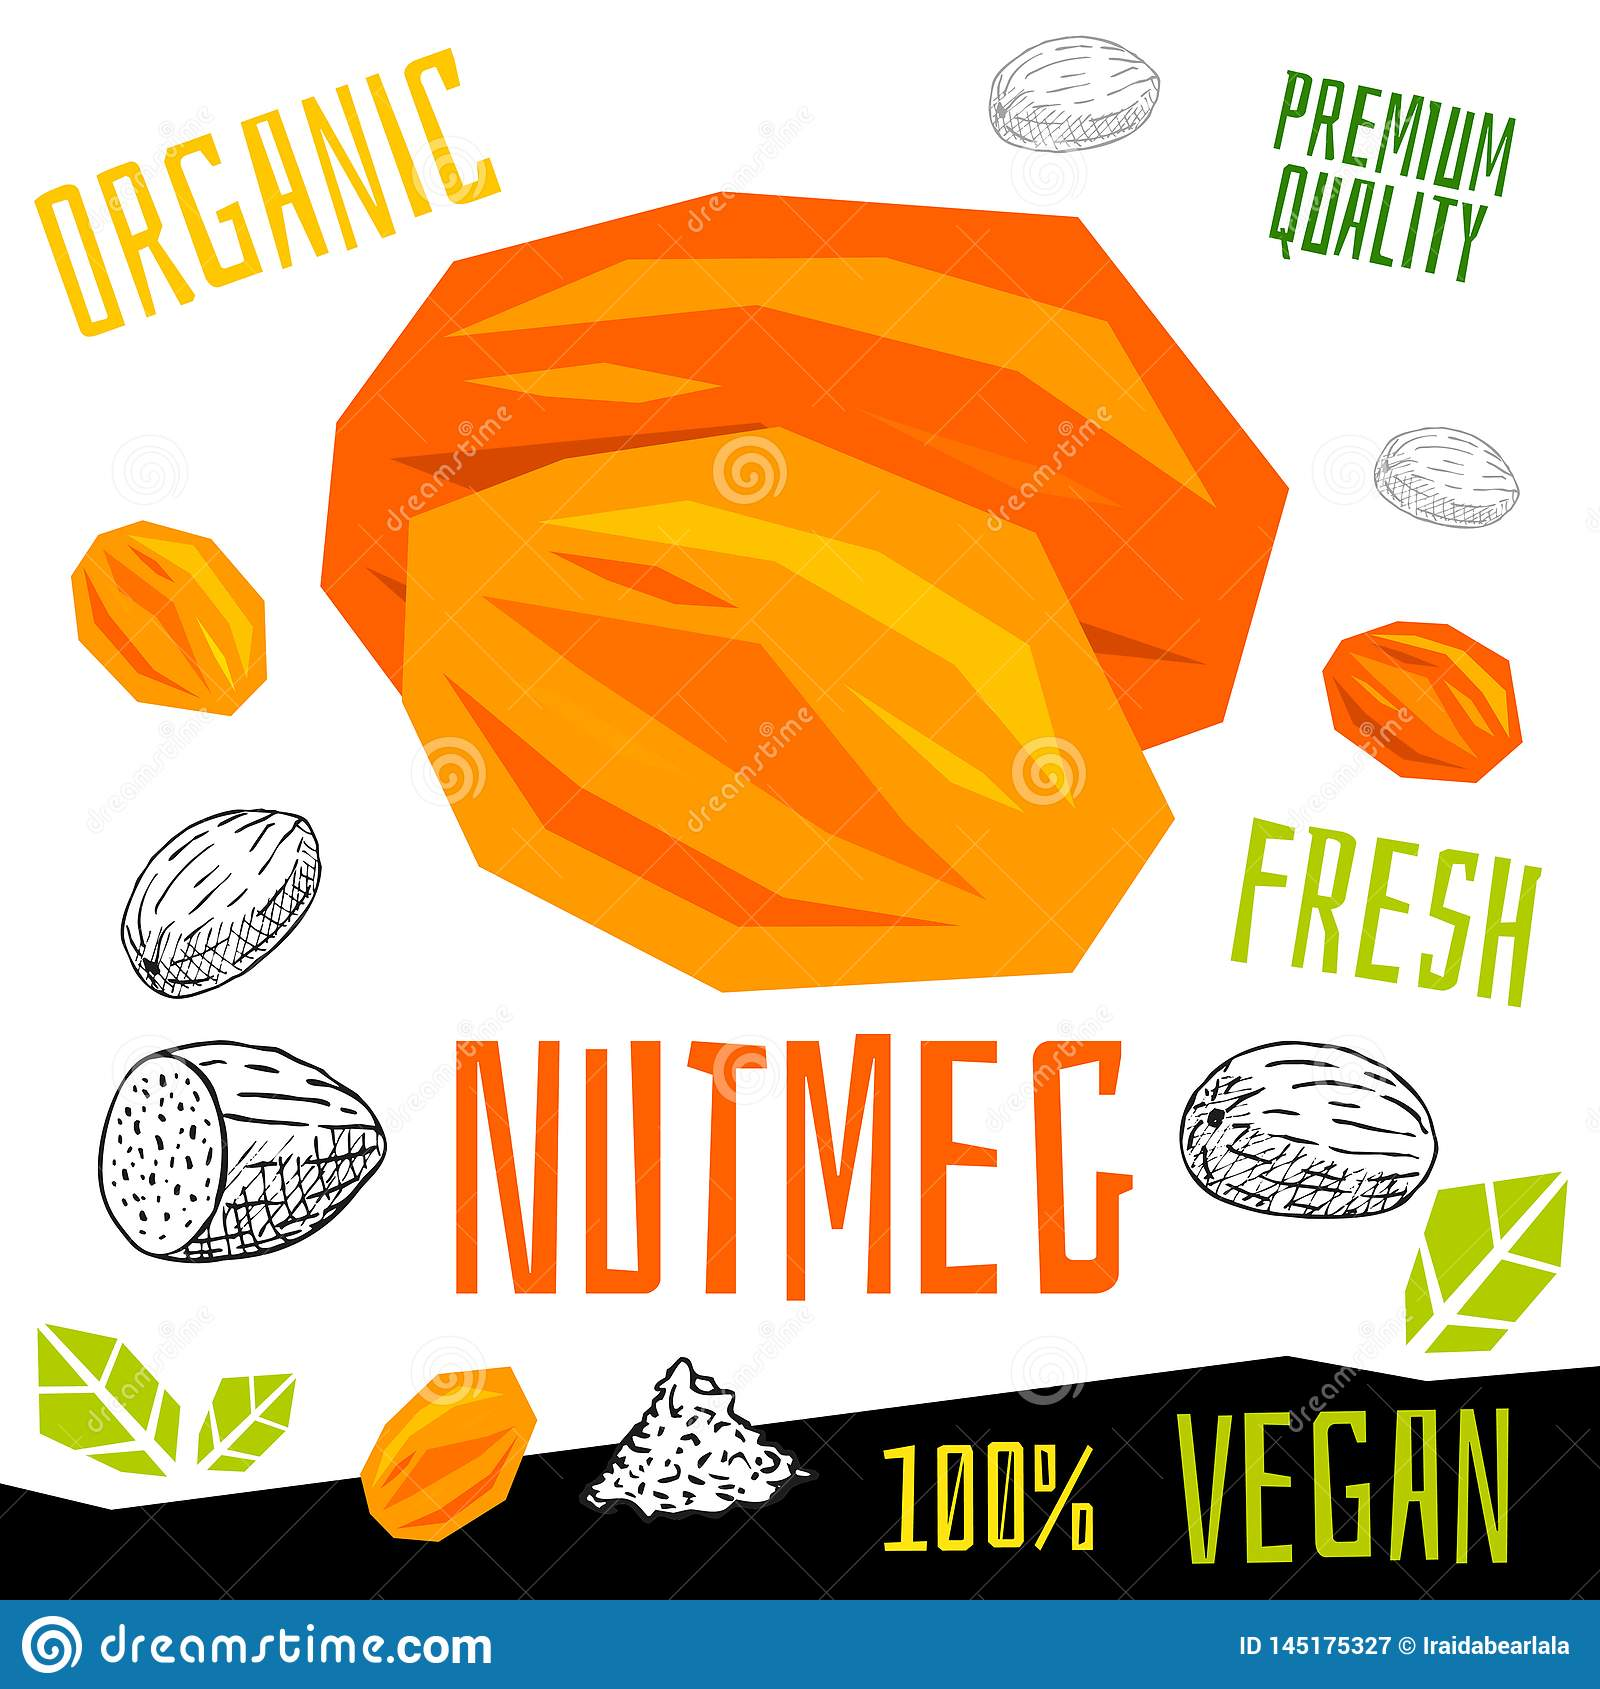 Nutmeg nuts icon herb label fresh organic condiment, nuts herbs spice condiment color graphic design vegan food.